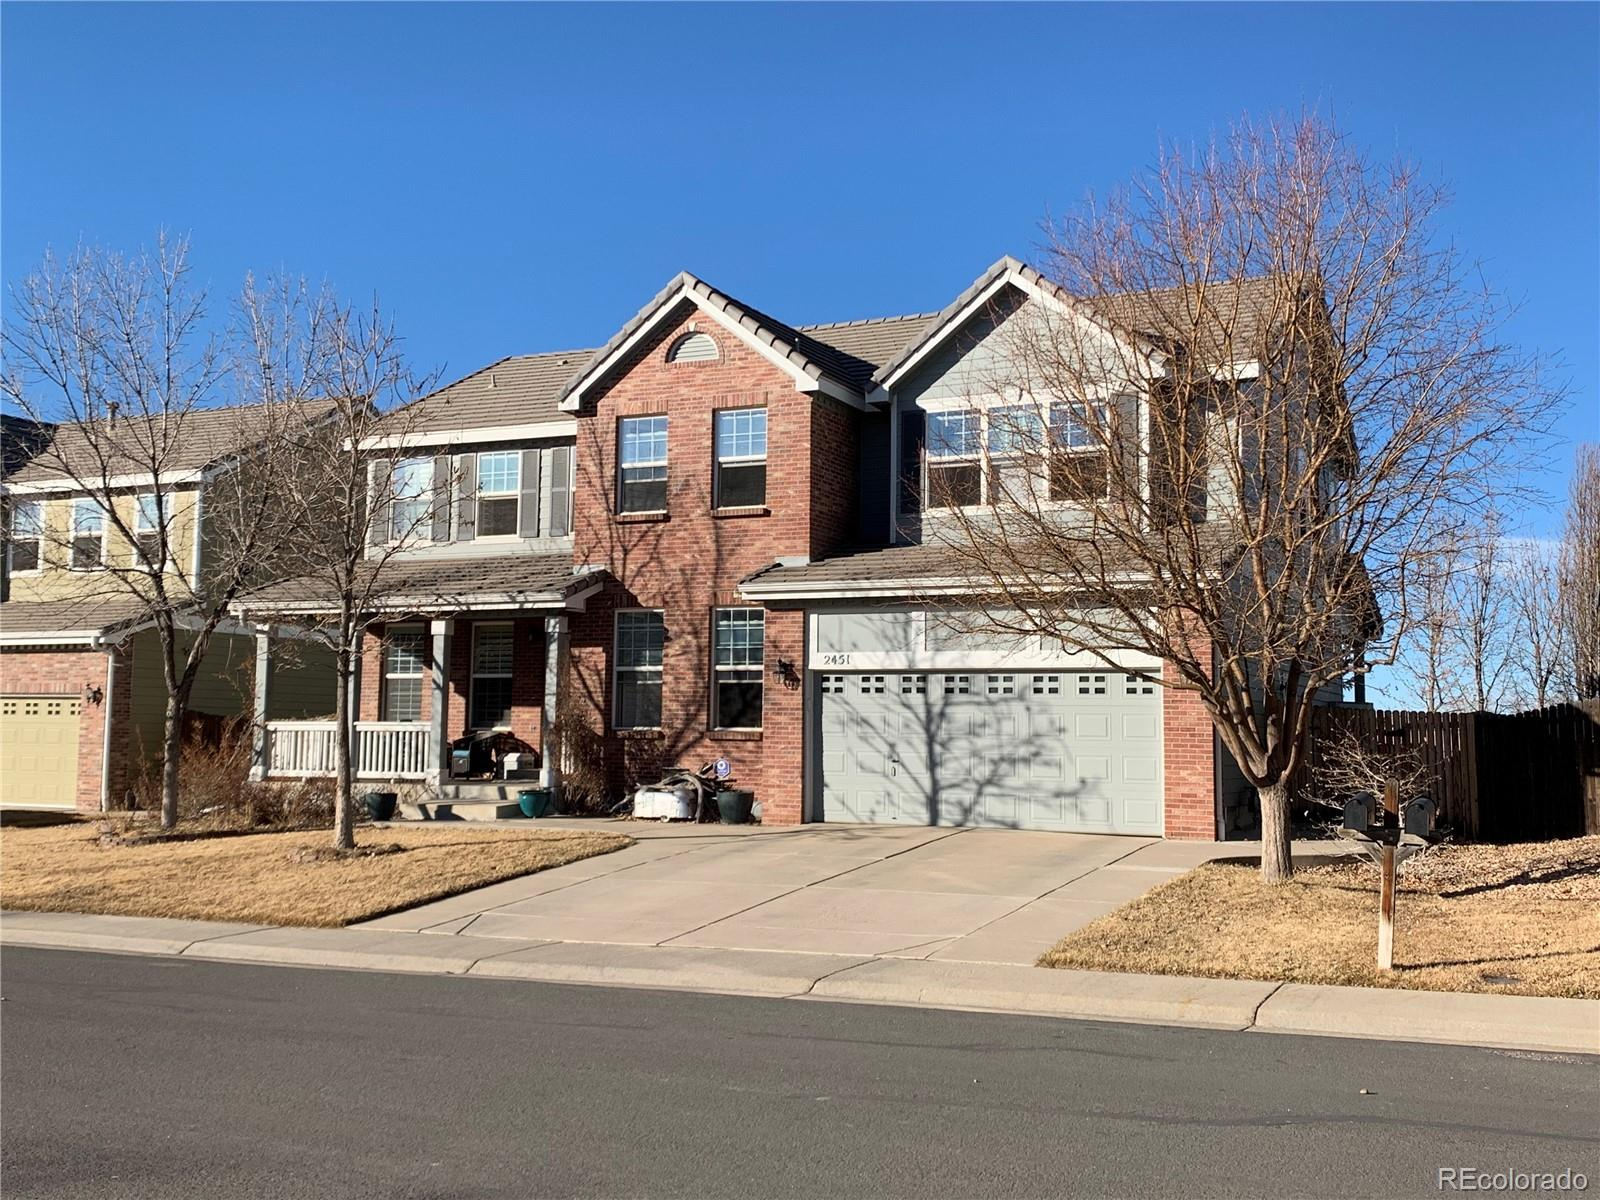 MLS# 4136888 - 1 - 2451 E 139th Place, Thornton, CO 80602